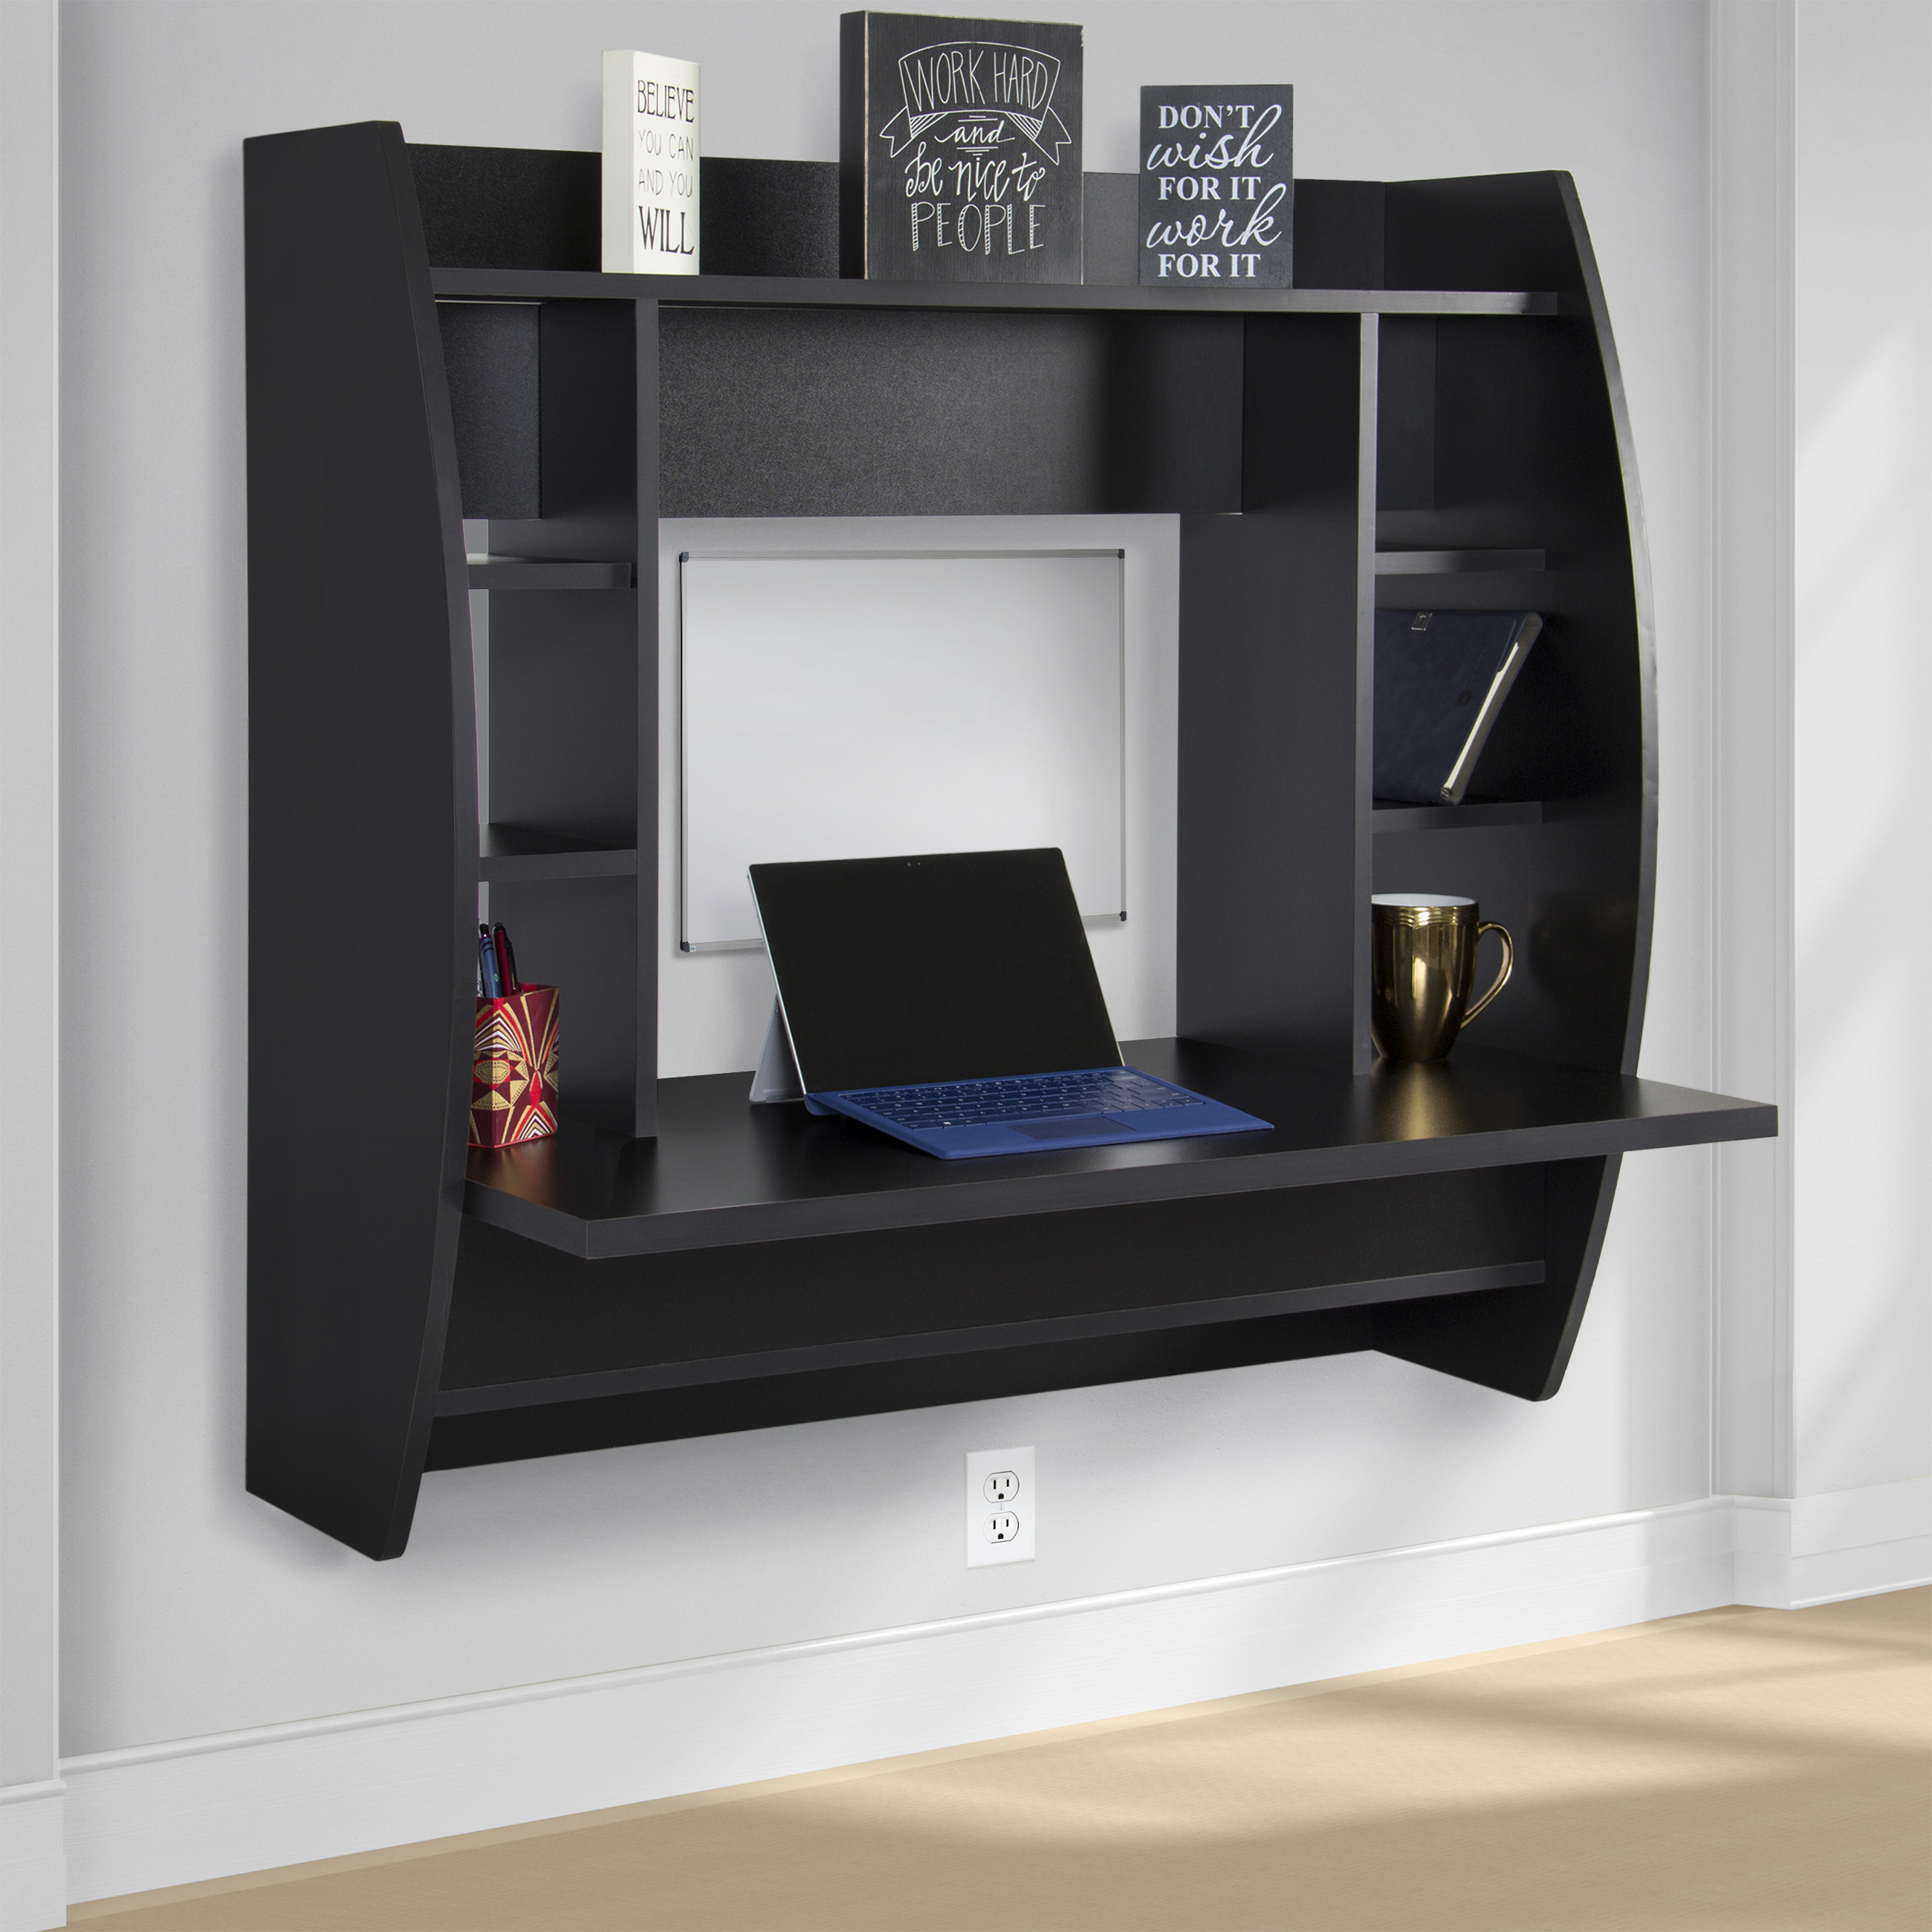 Best Choice Products Wall Mount Floating Computer Desk With Storage Shelves Home Work Station- Black & Best Choice Products Wall Mount Floating Computer Desk With Storage ...